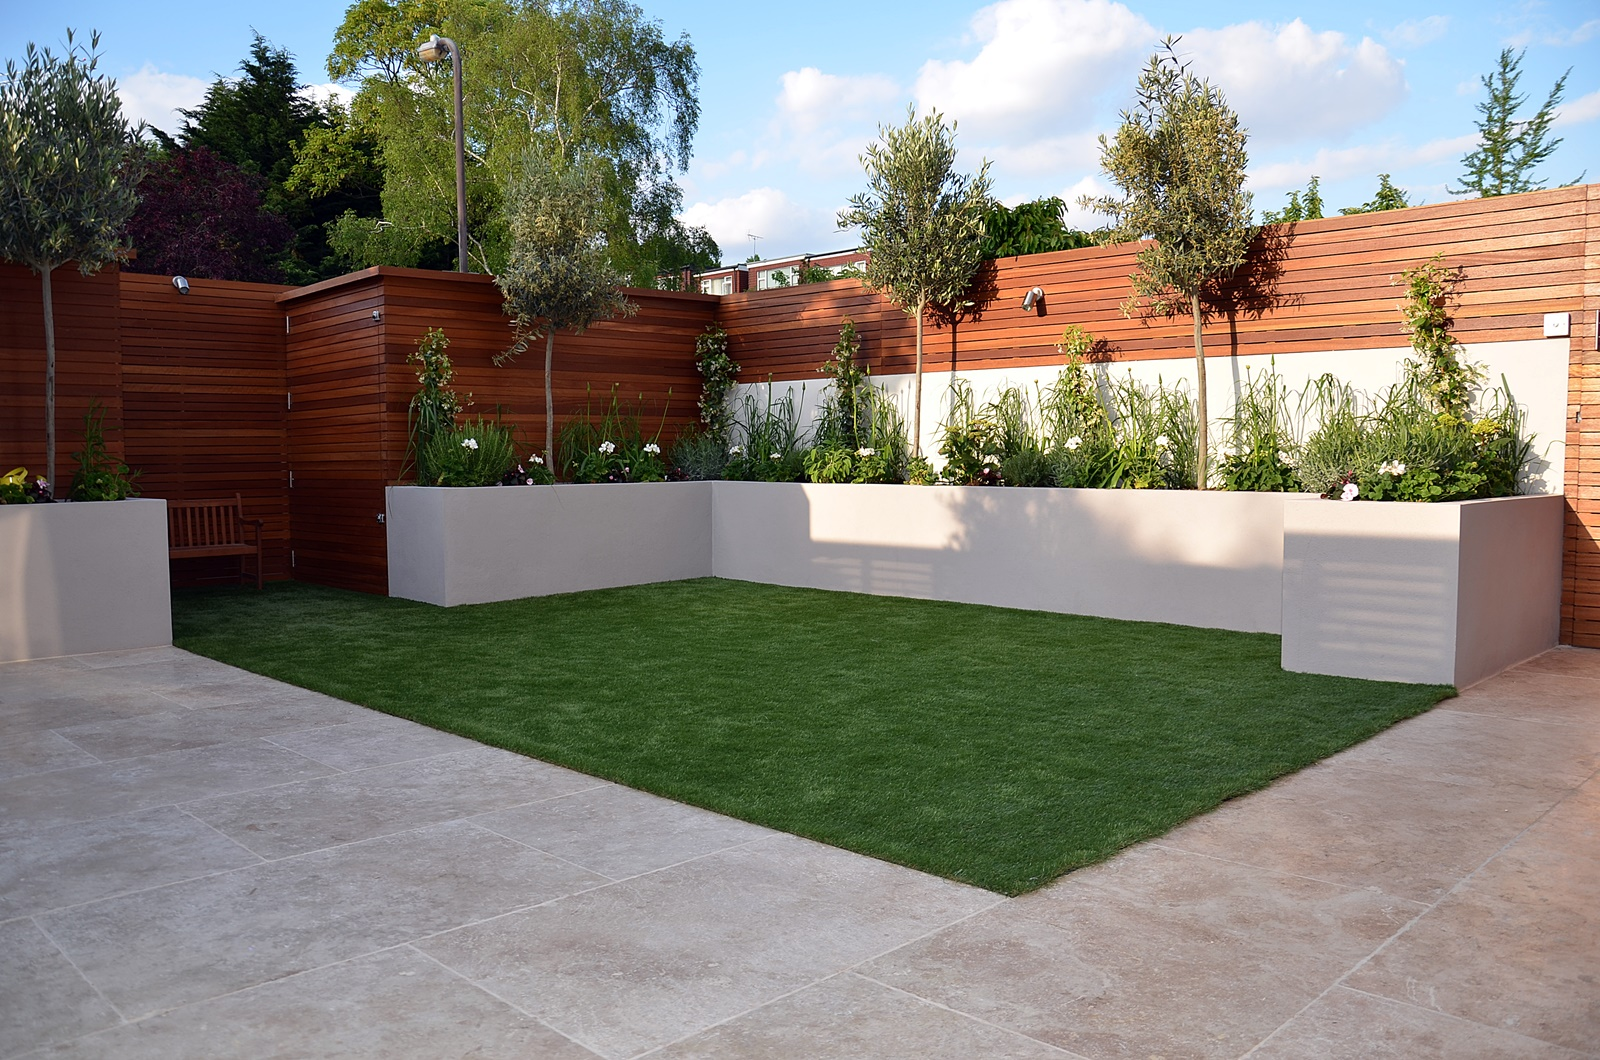 Garden design ideas aol image search results for Small garden plans uk